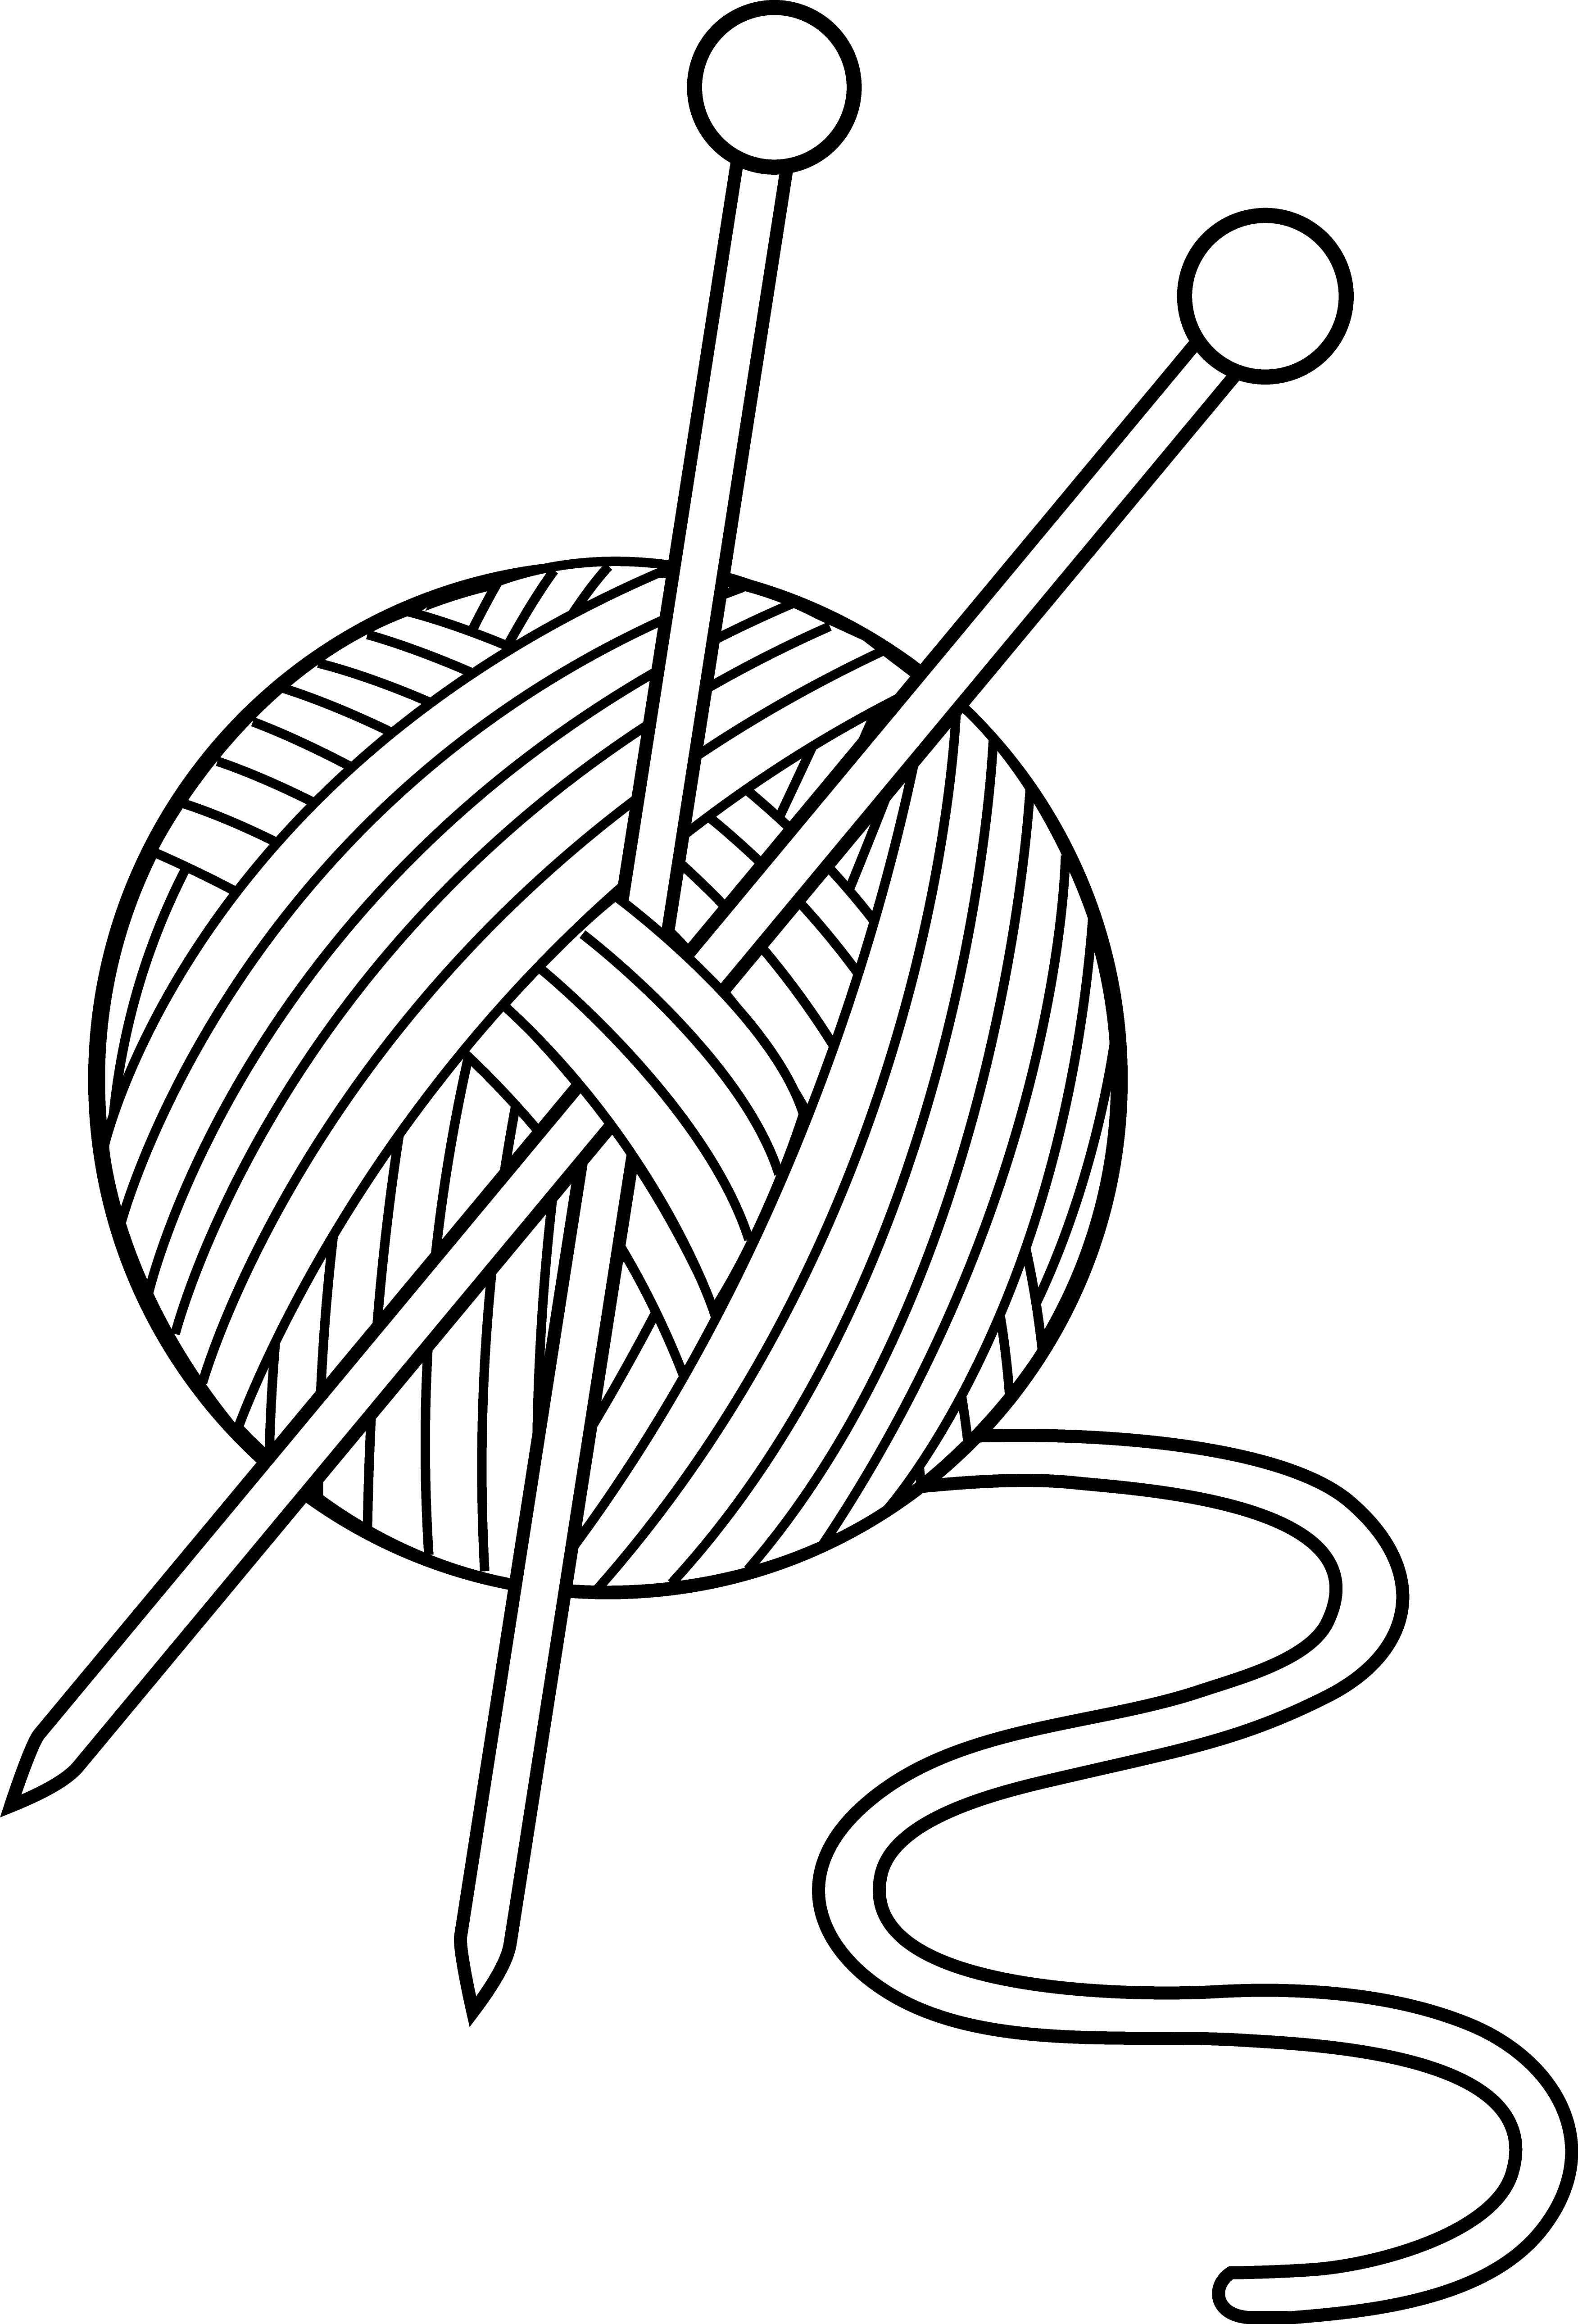 Knitting Clip Art Borders : Knit clipart panda free images